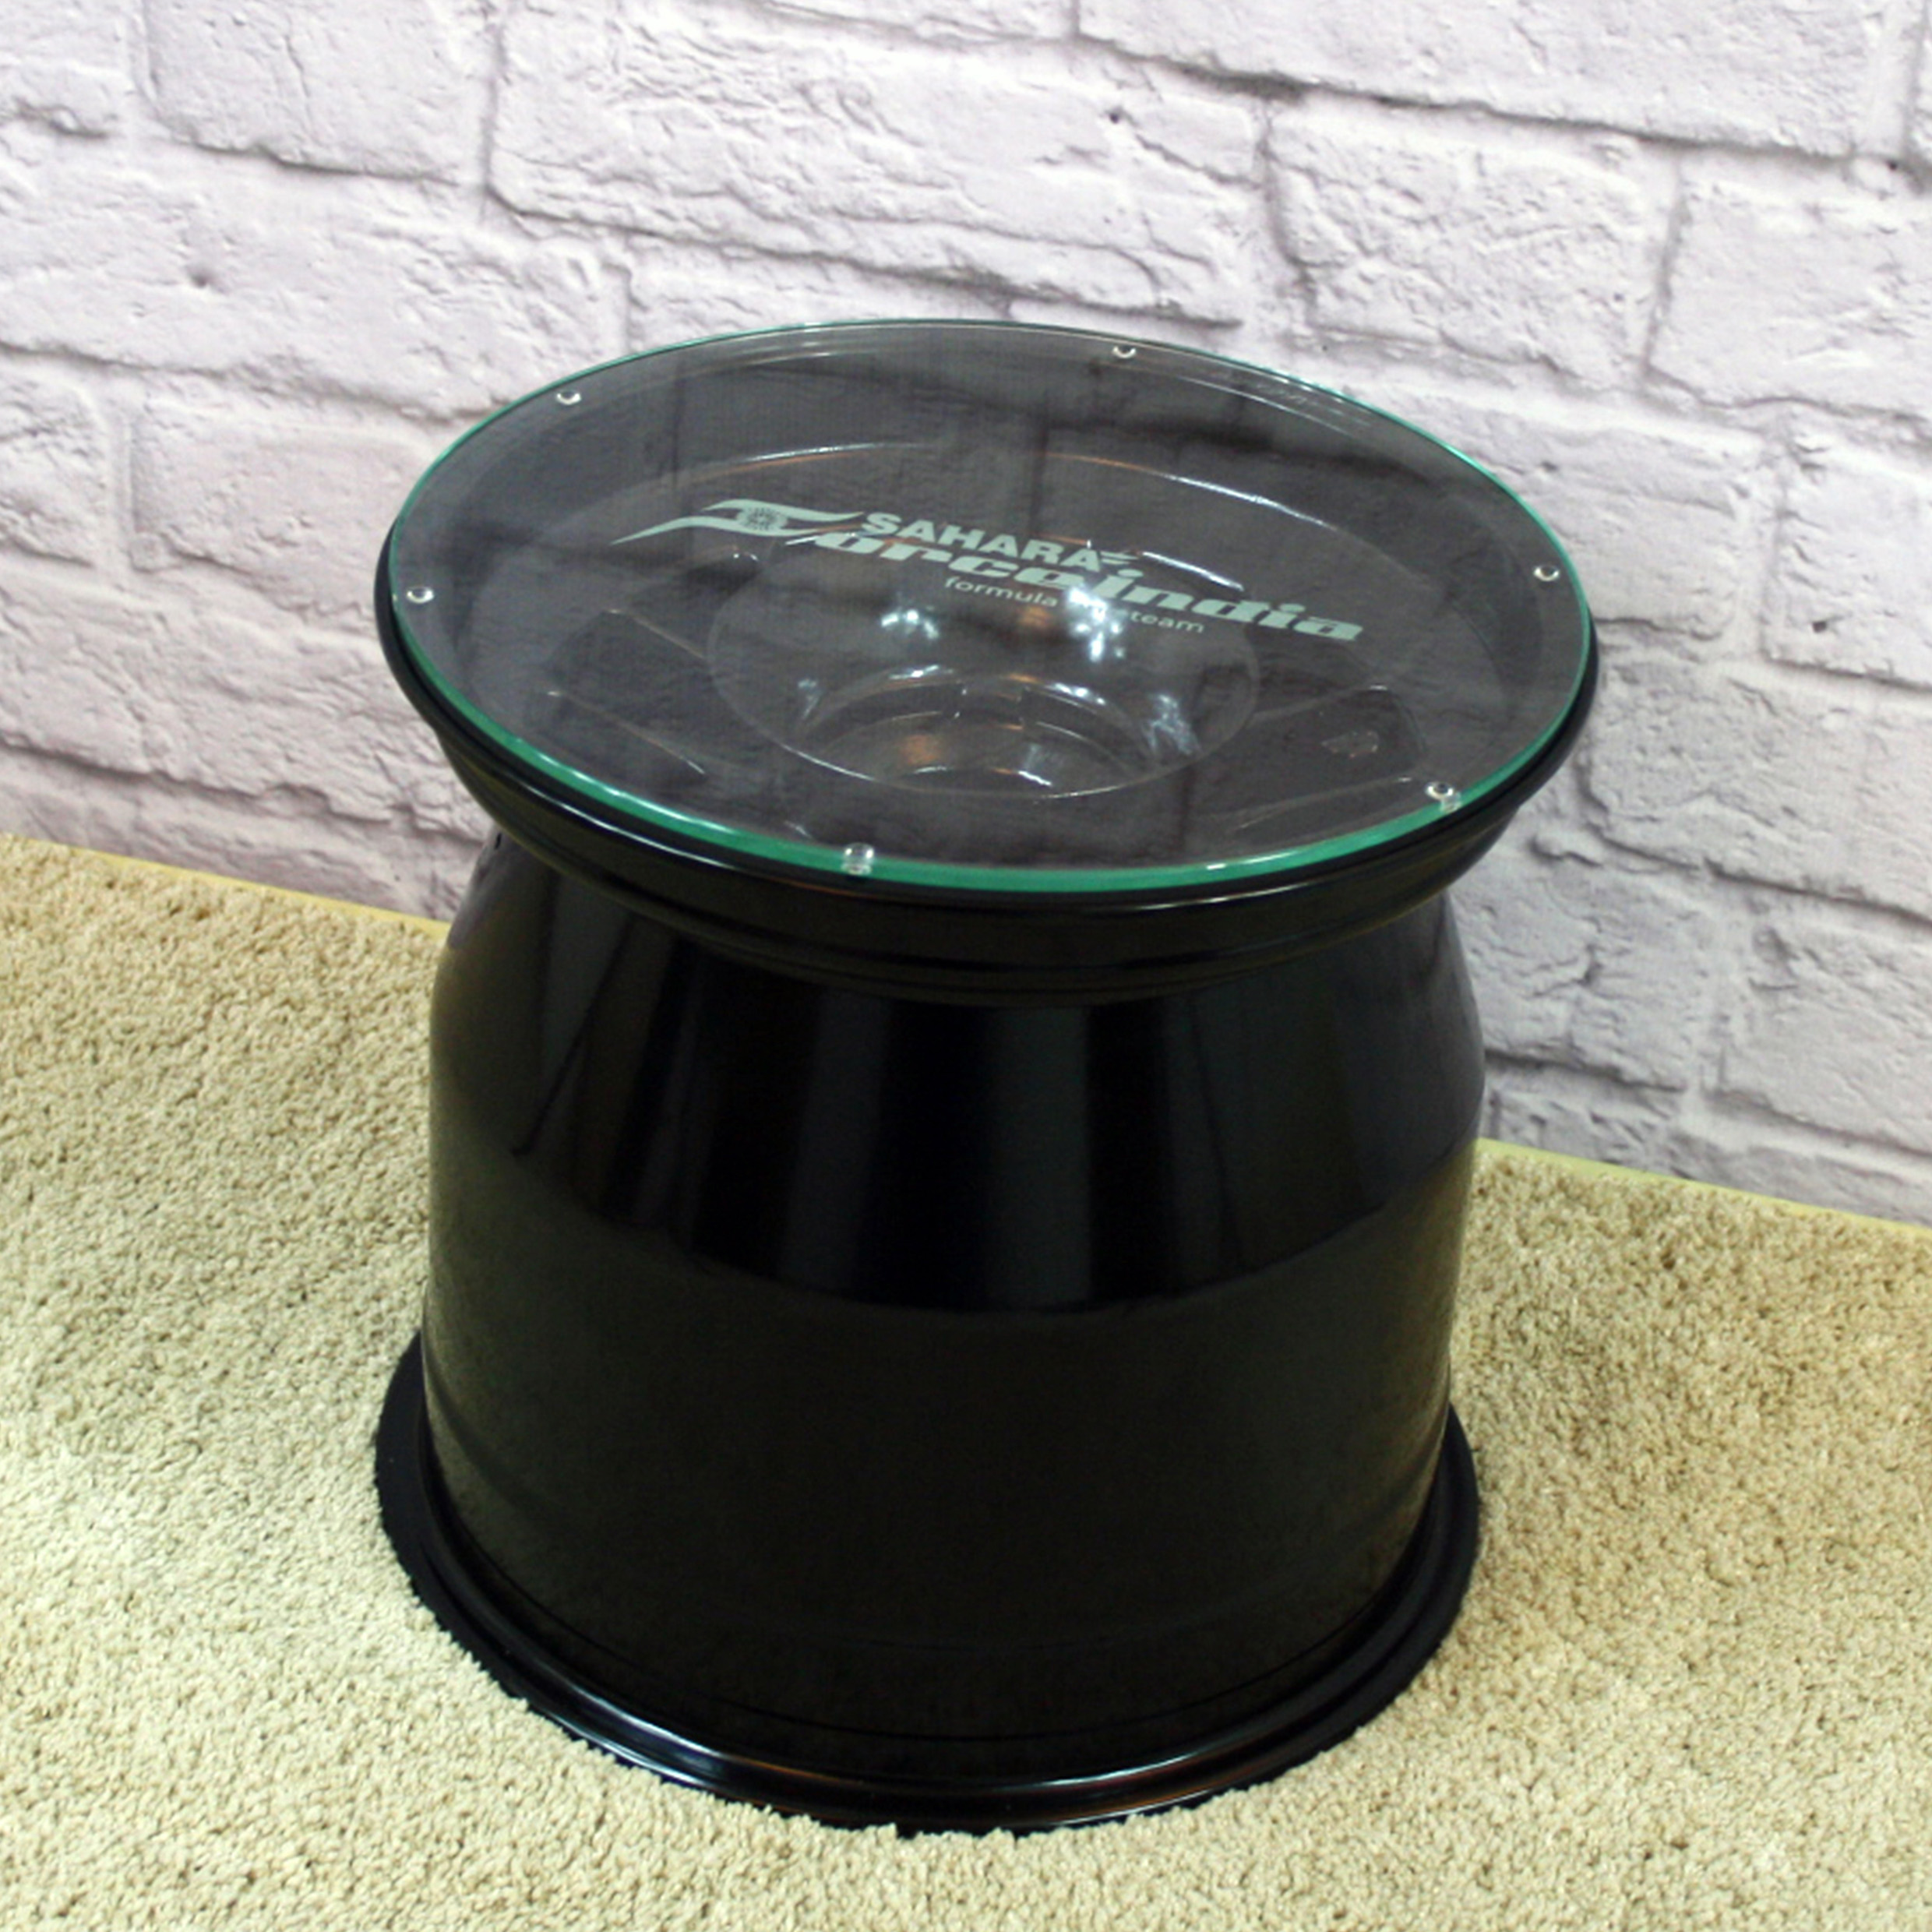 Sahara Force India Wheel Rim Table - Black